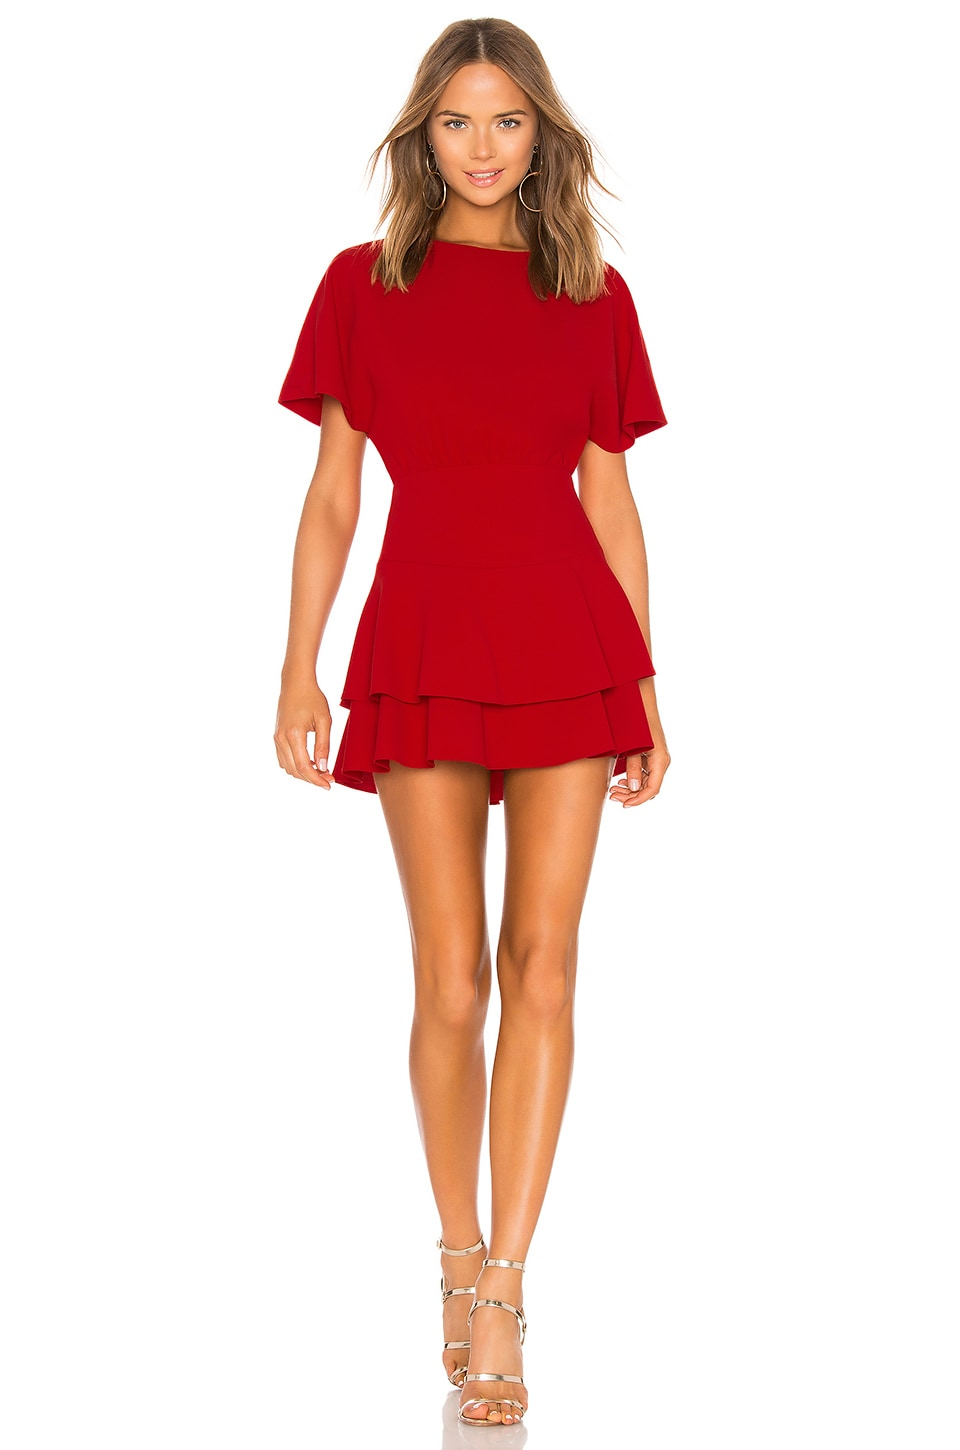 Alice + Olivia Palmira Dress in Ruby